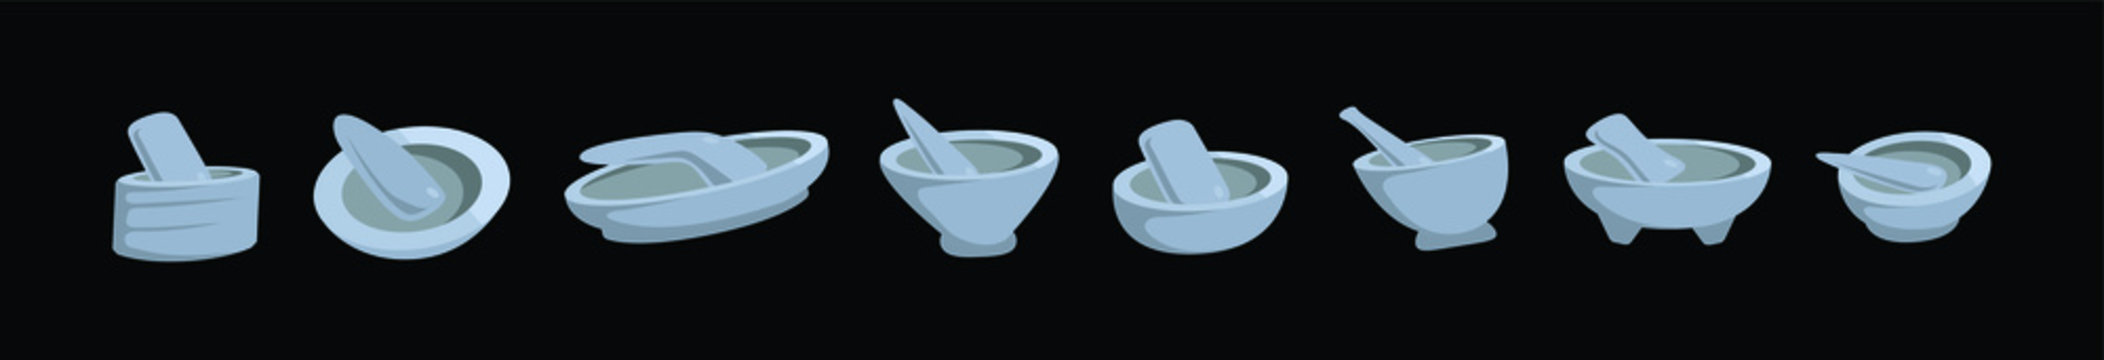 set of mexican molcajete icon design template with various models. vector illustration